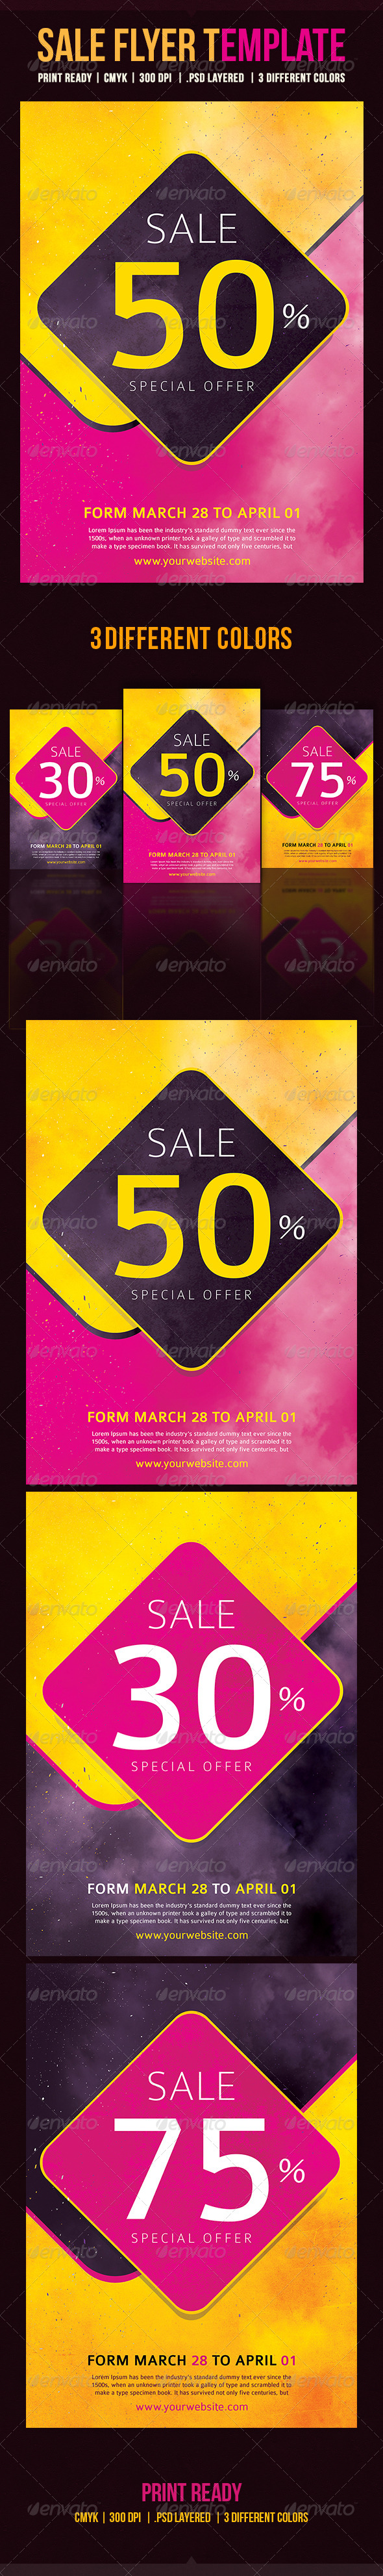 GraphicRiver Sale Flyer Template 8763143